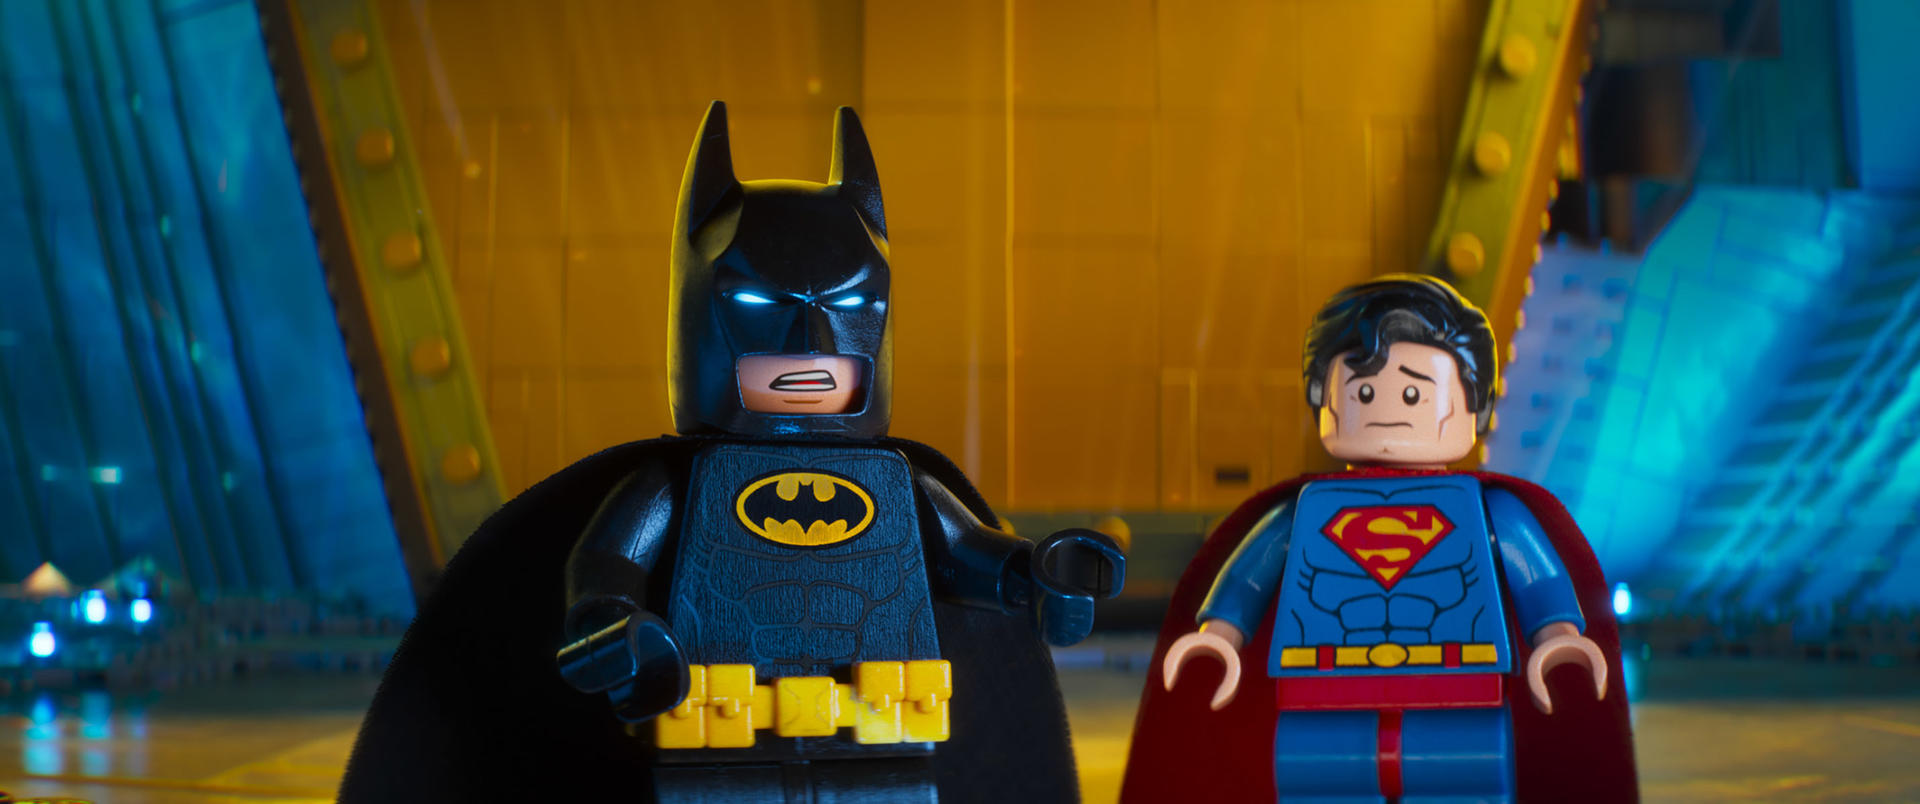 The Lego Batman Movie Batman und Superman